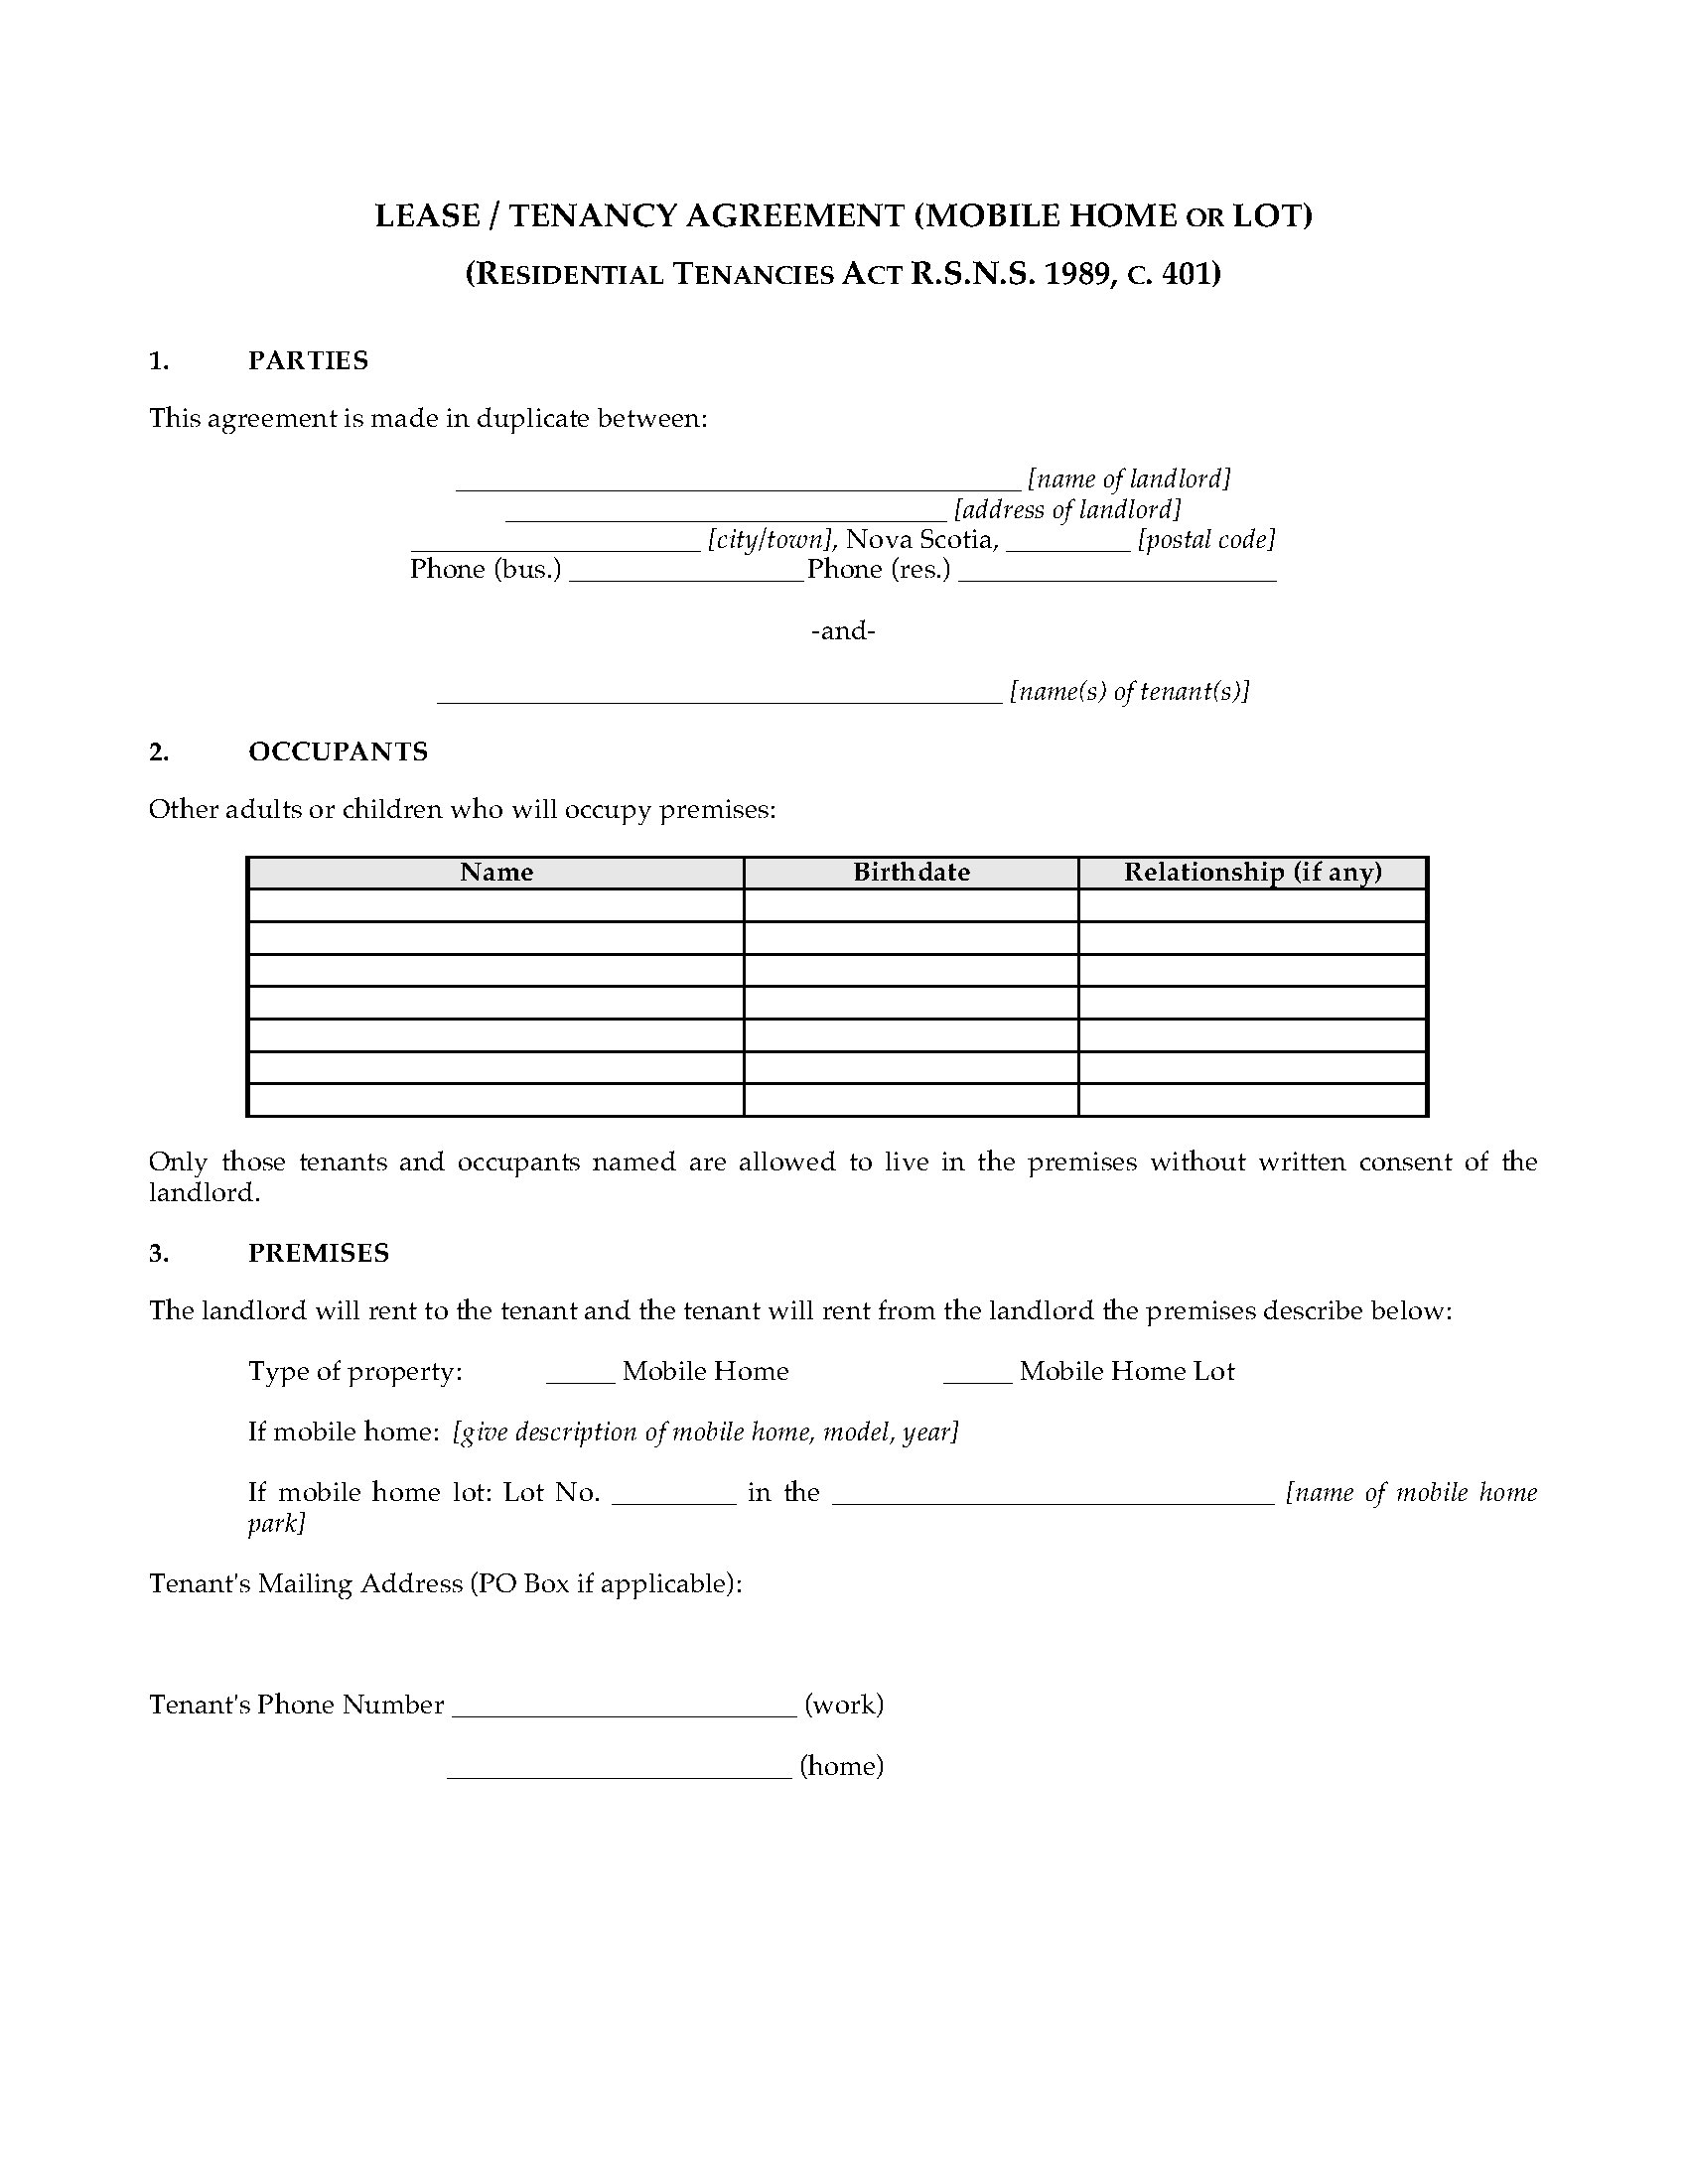 Nova scotia lease agreement for mobile home or lot legal forms and picture of nova scotia lease agreement for mobile home or lot platinumwayz